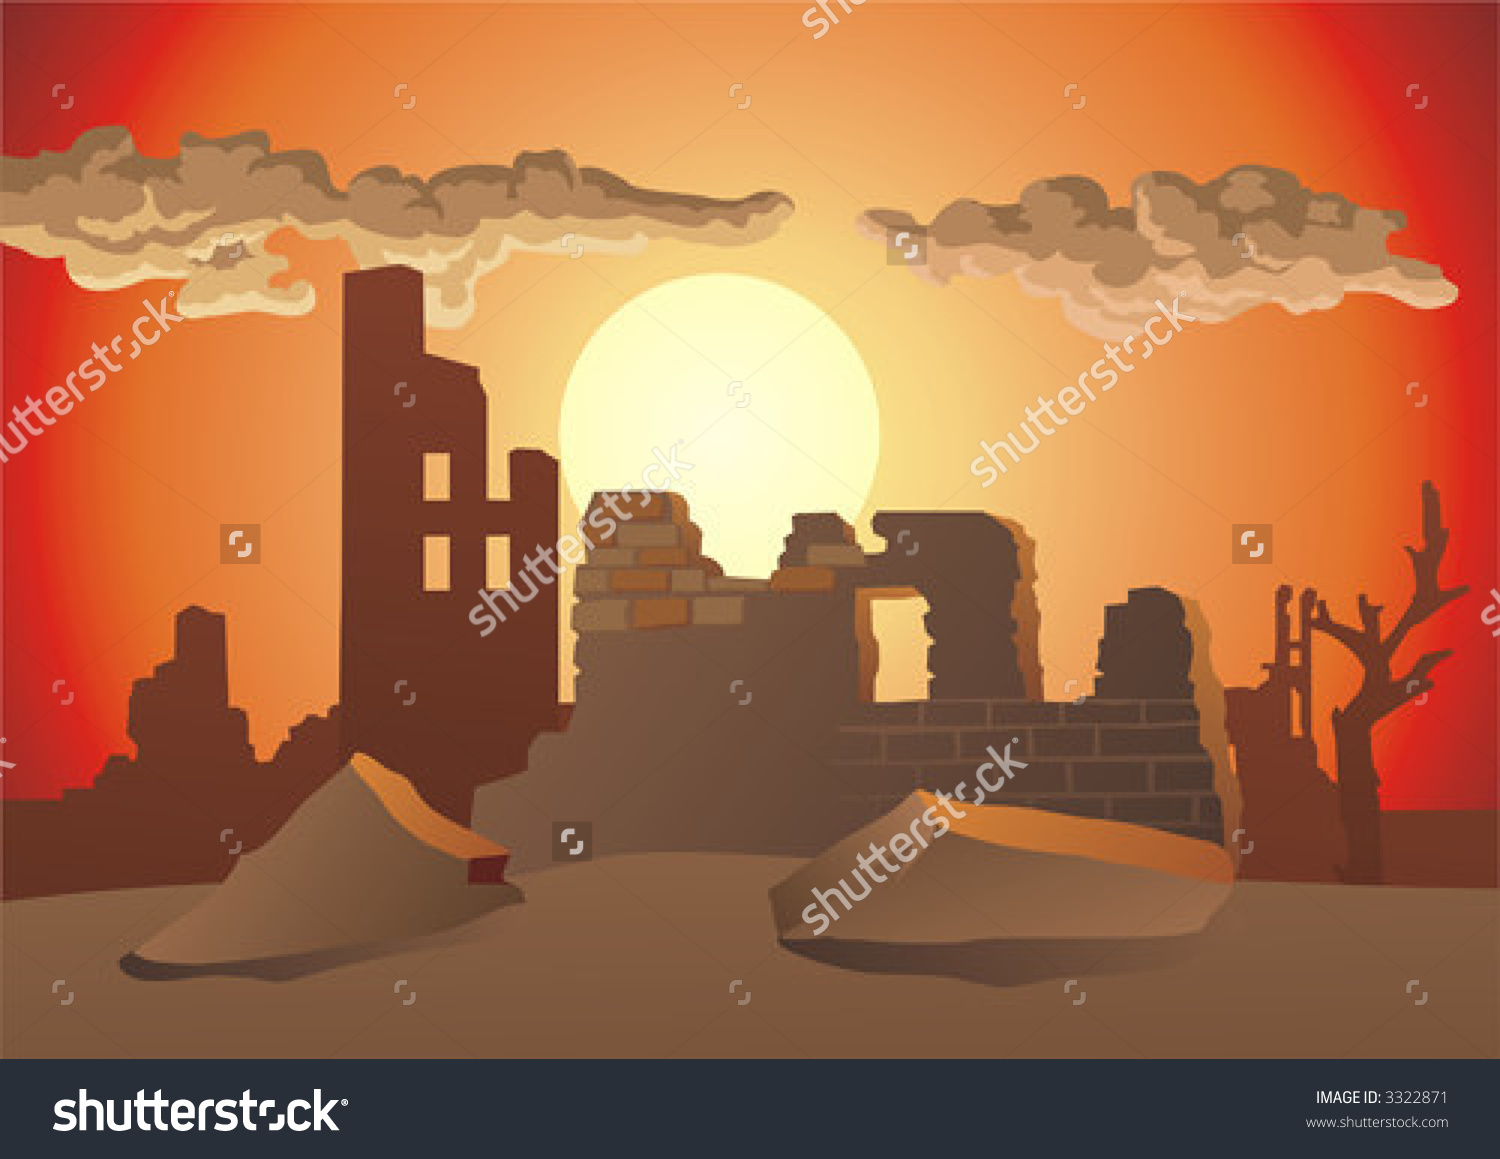 Ruin clipart destroyed city Ruined Art Clip City City